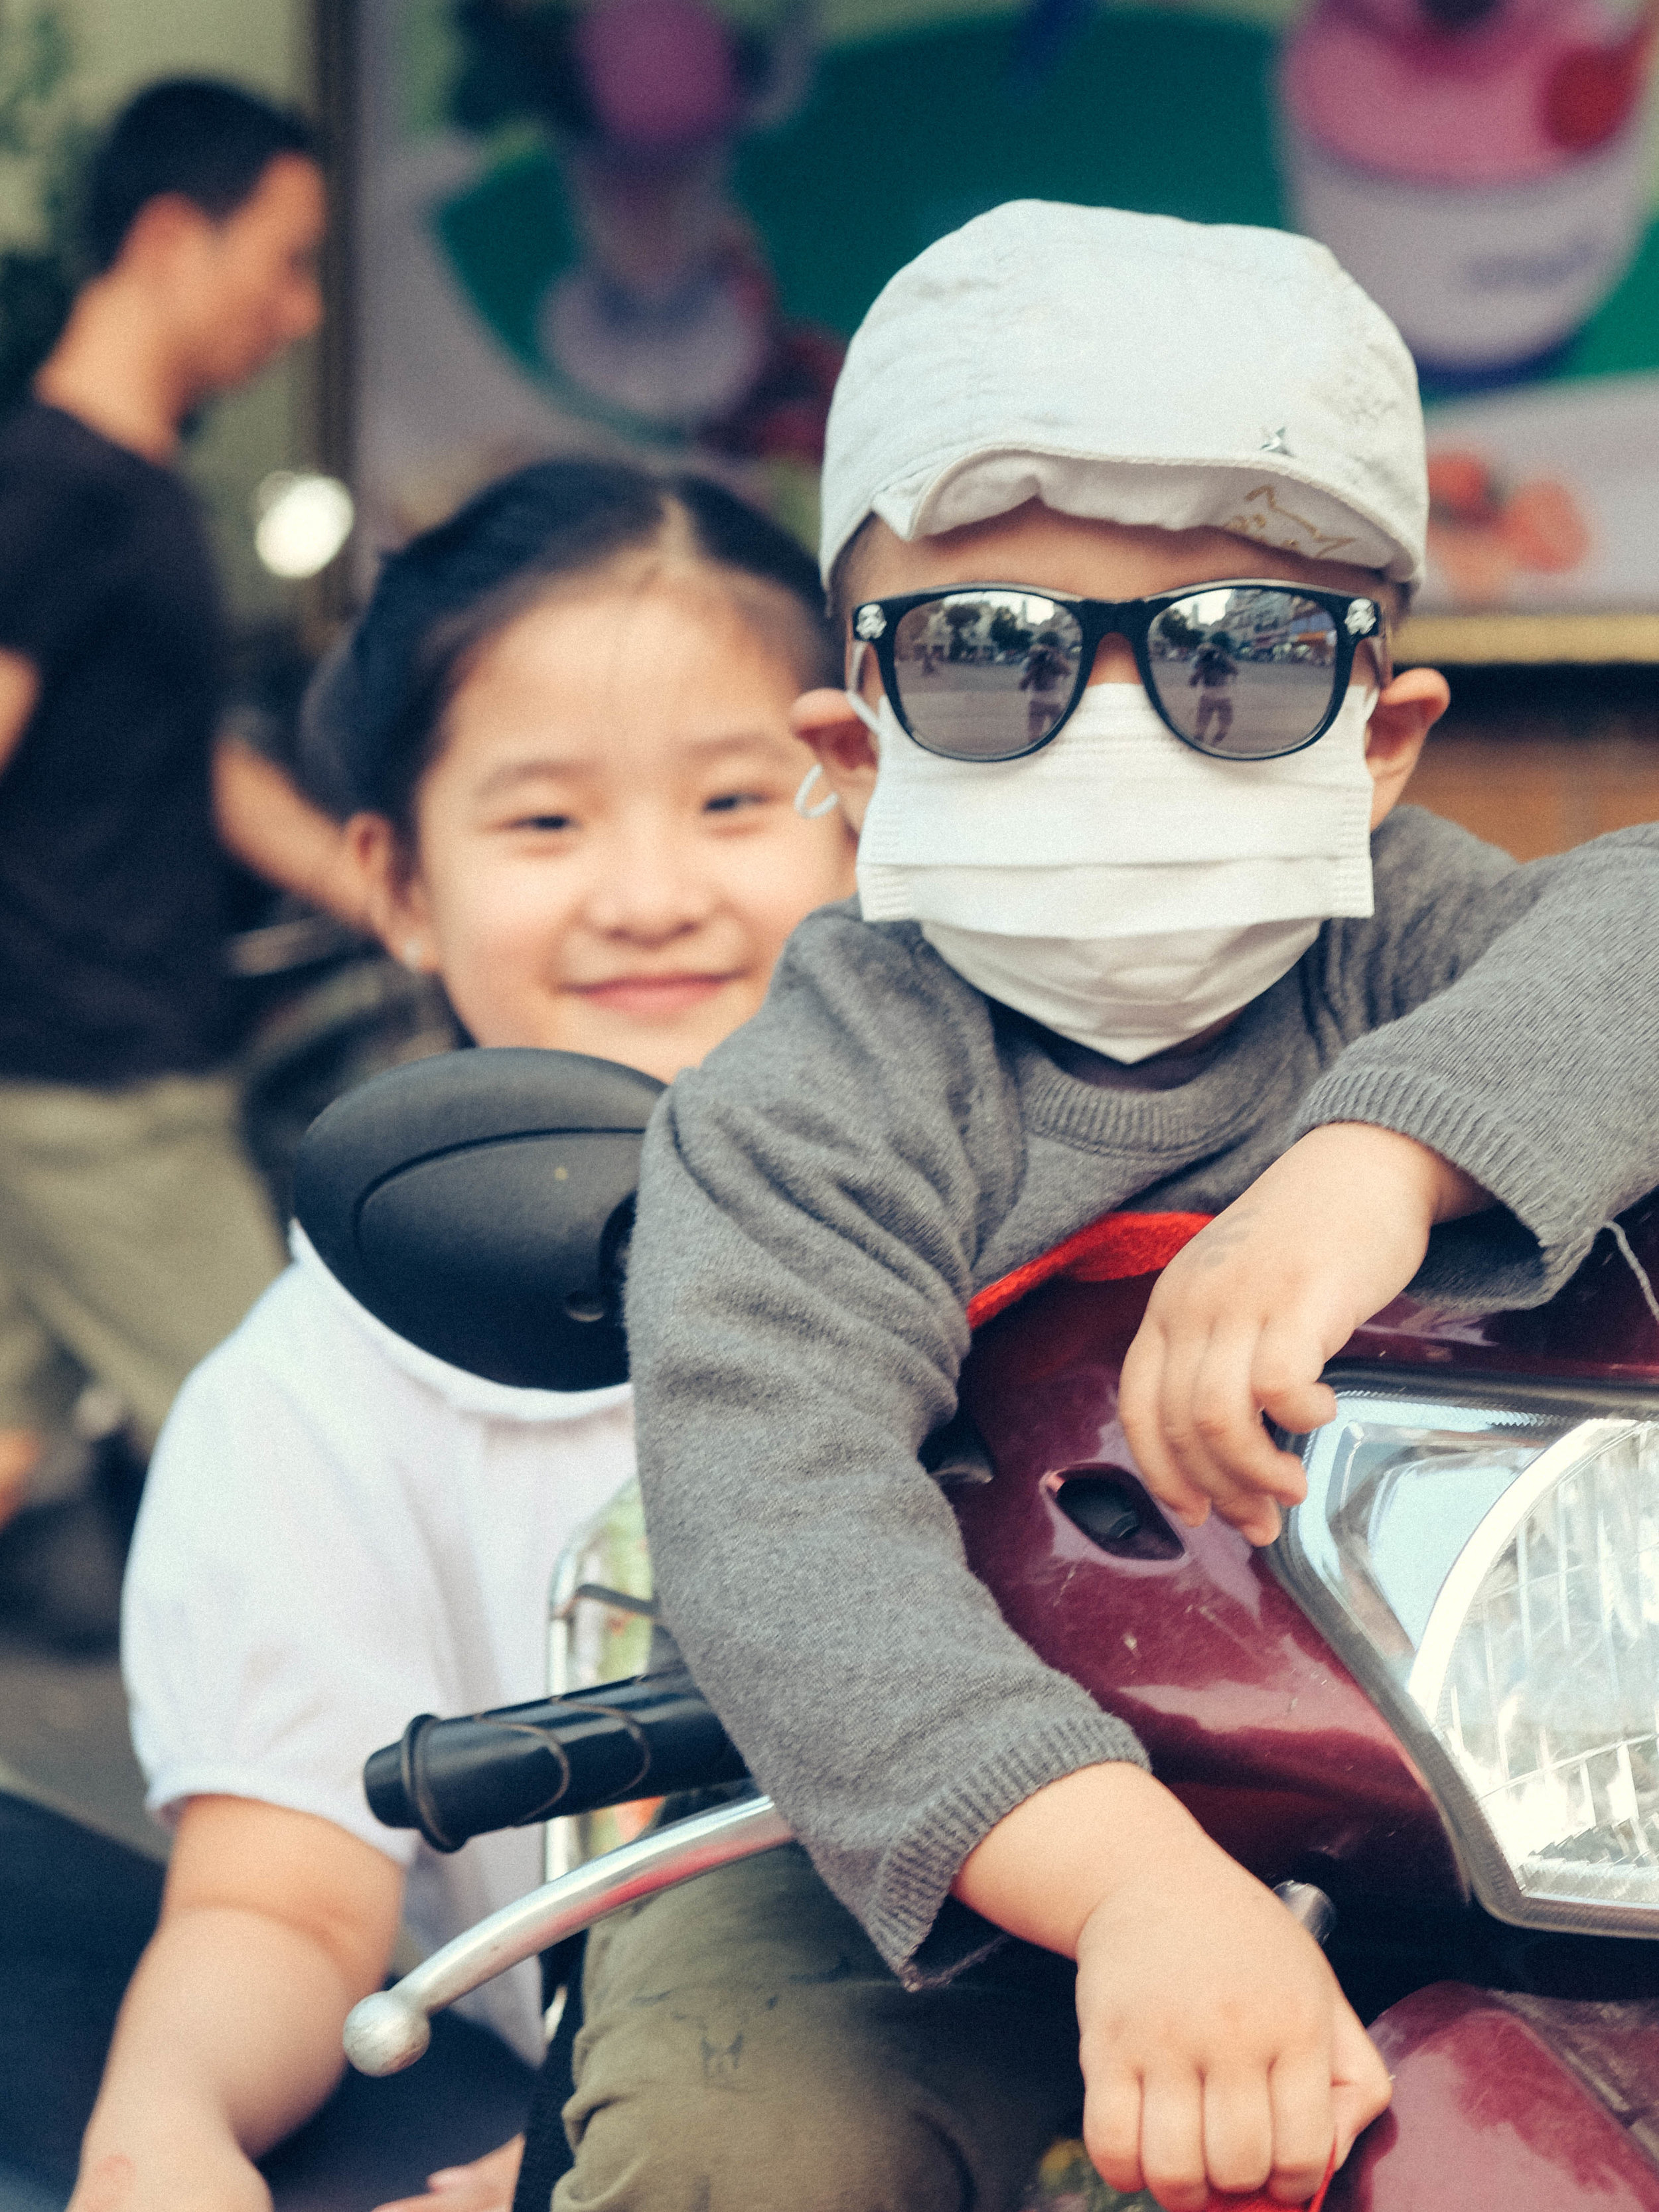 jacob-ruiz-design-photography-vietnam-kids-on-bike